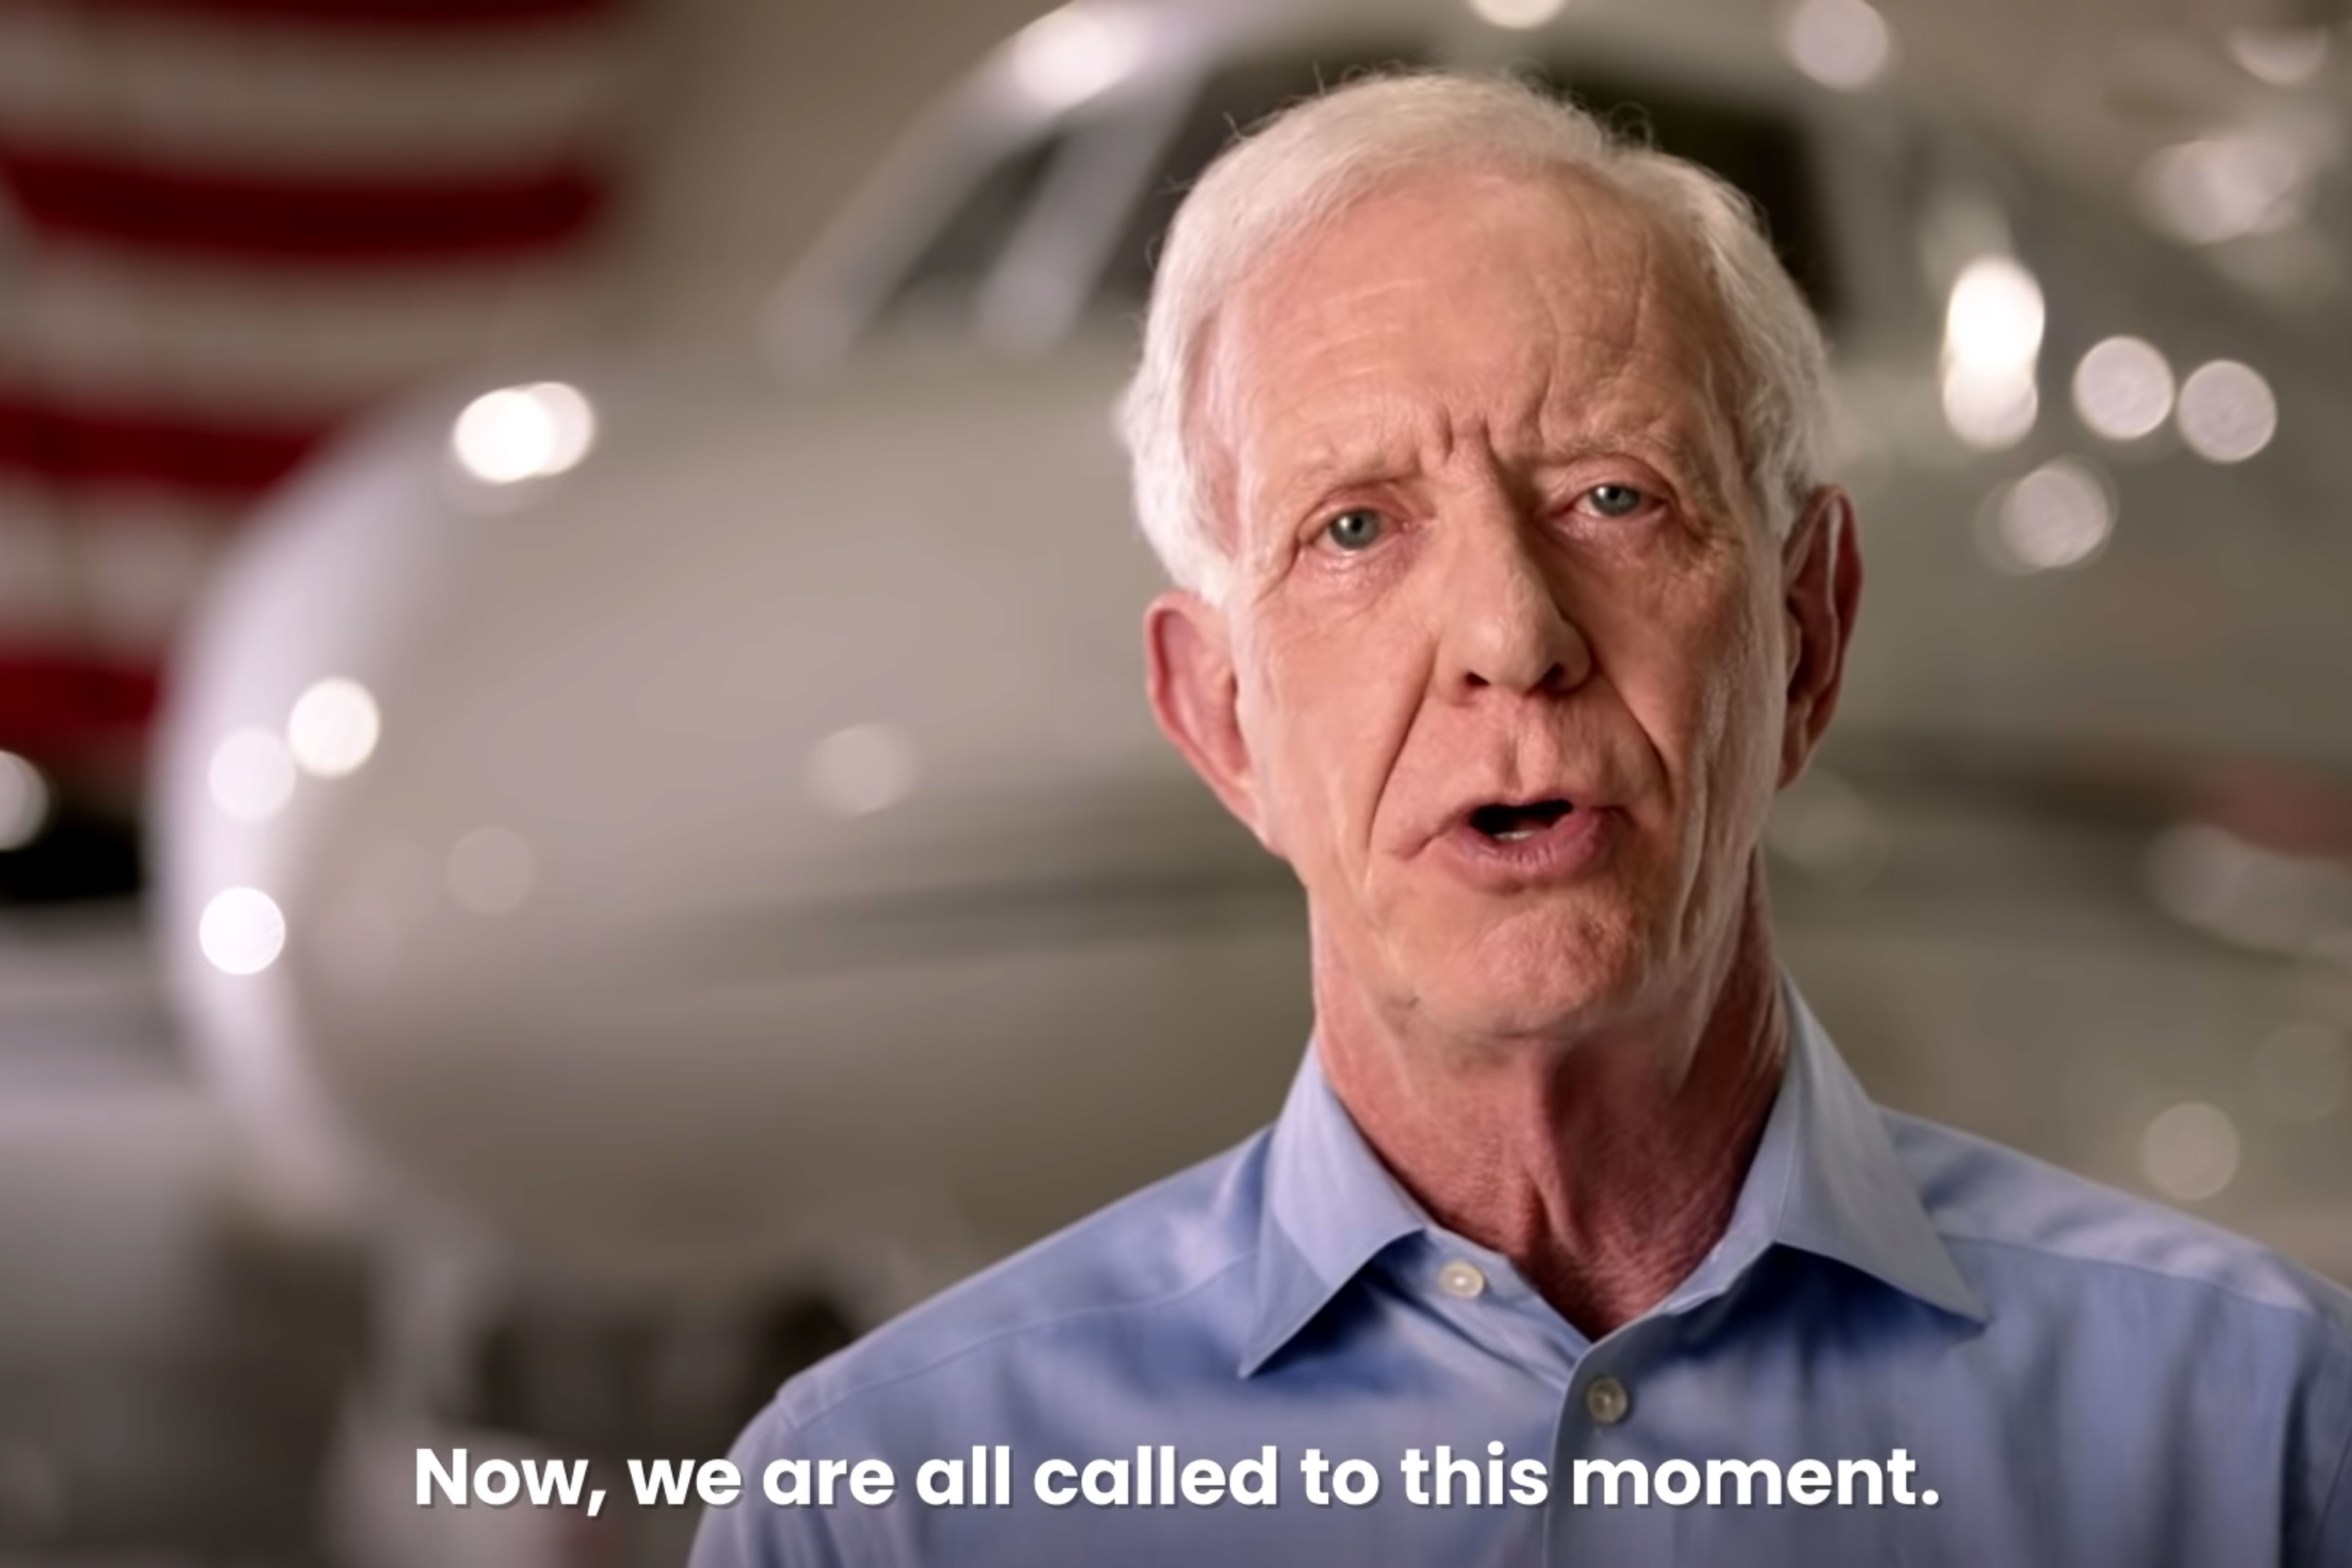 'Vote. Him. Out.': Watch Captain Chesley 'Sully' Sullenberger's scathing anti-Trump ad